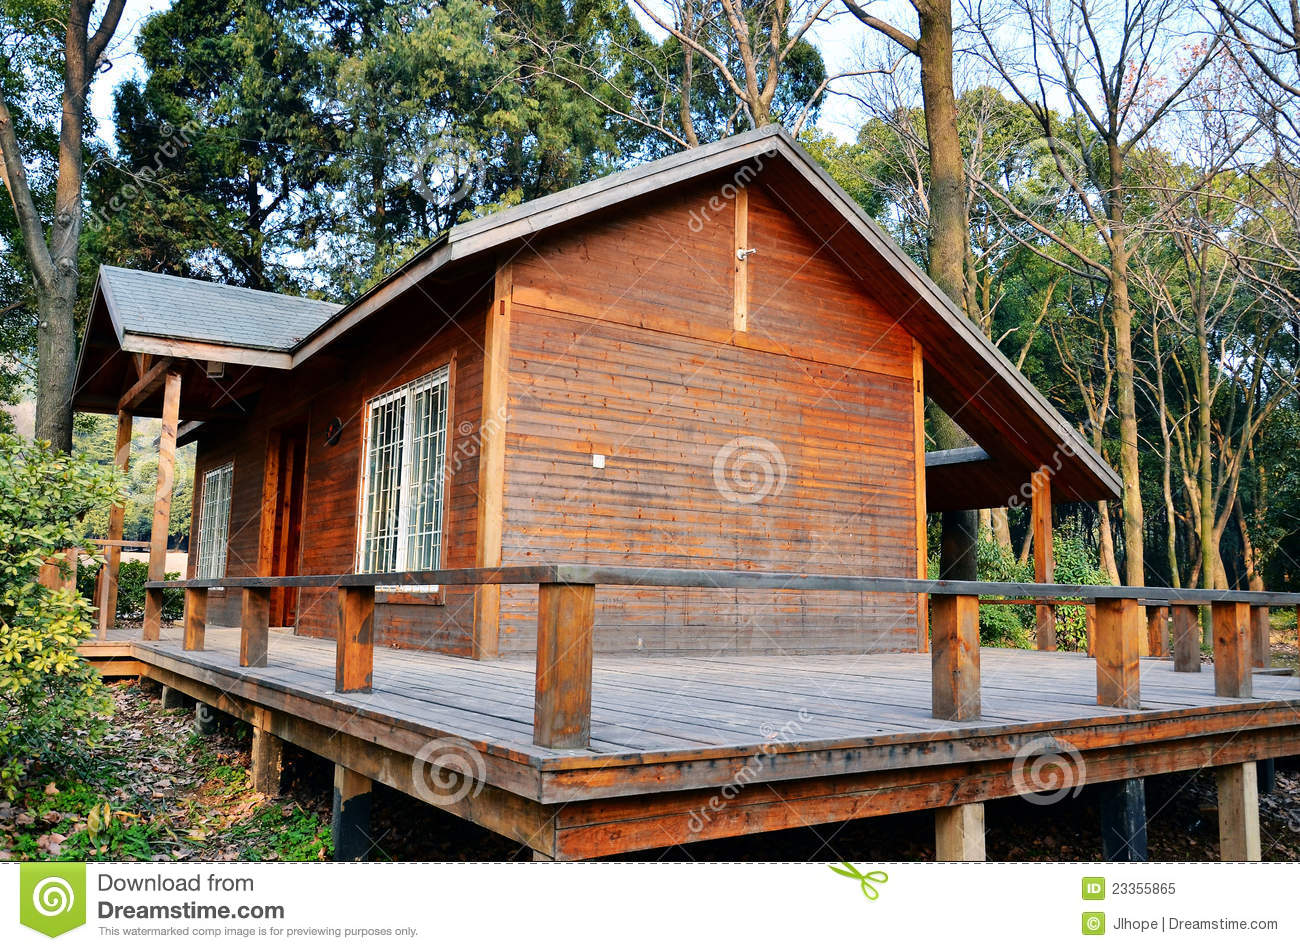 Small wood house stock image image of home architecture for Wood house architecture